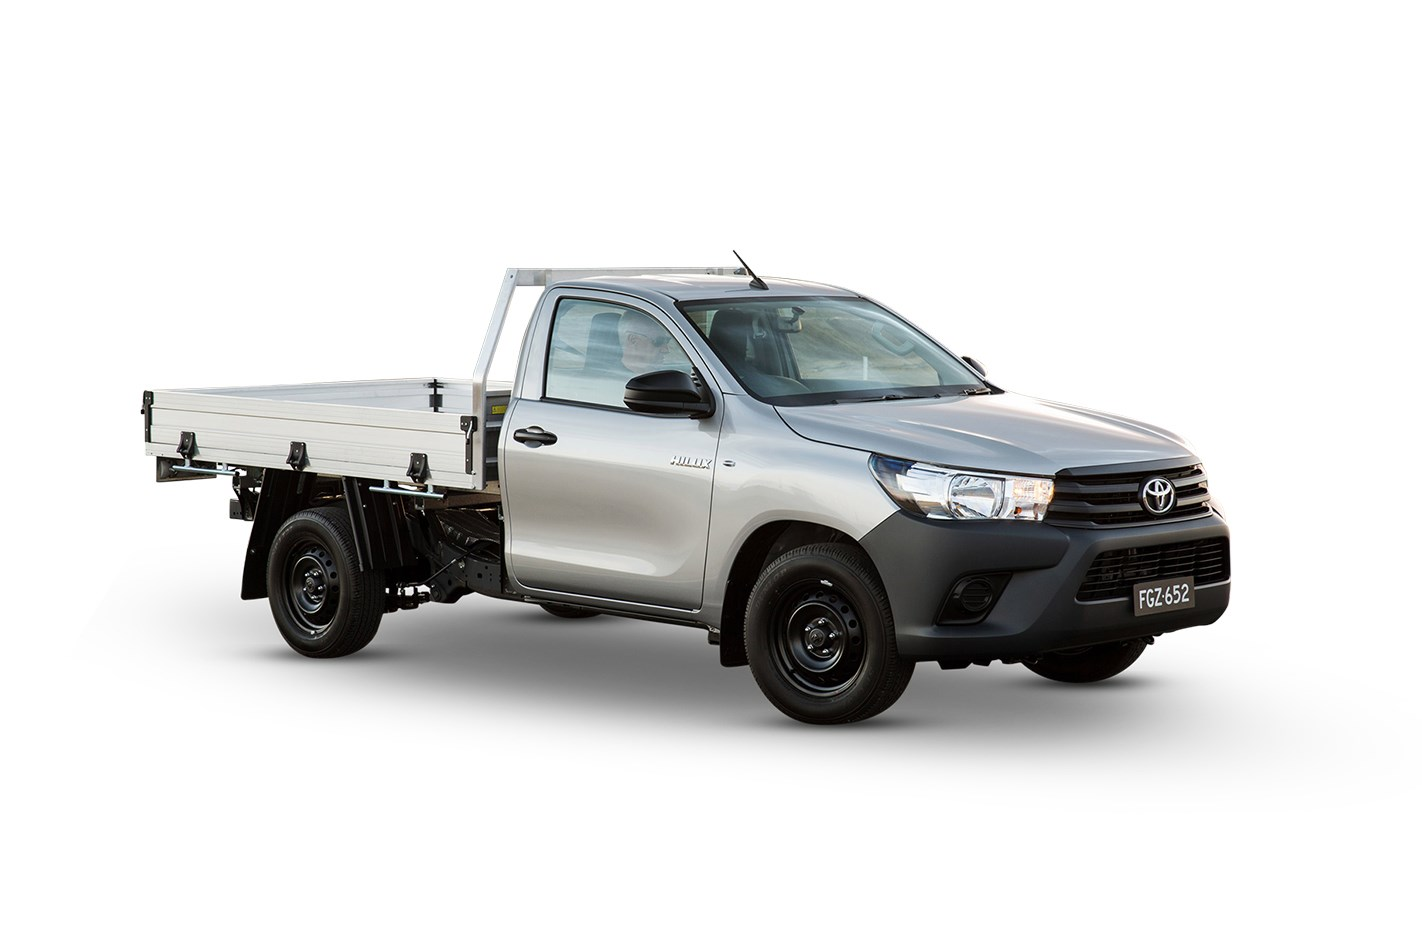 2016 toyota hilux sr 4x4 cab chassis review caradvice - 2017 Toyota Hilux Workmate 4x4 X Cab C Chas